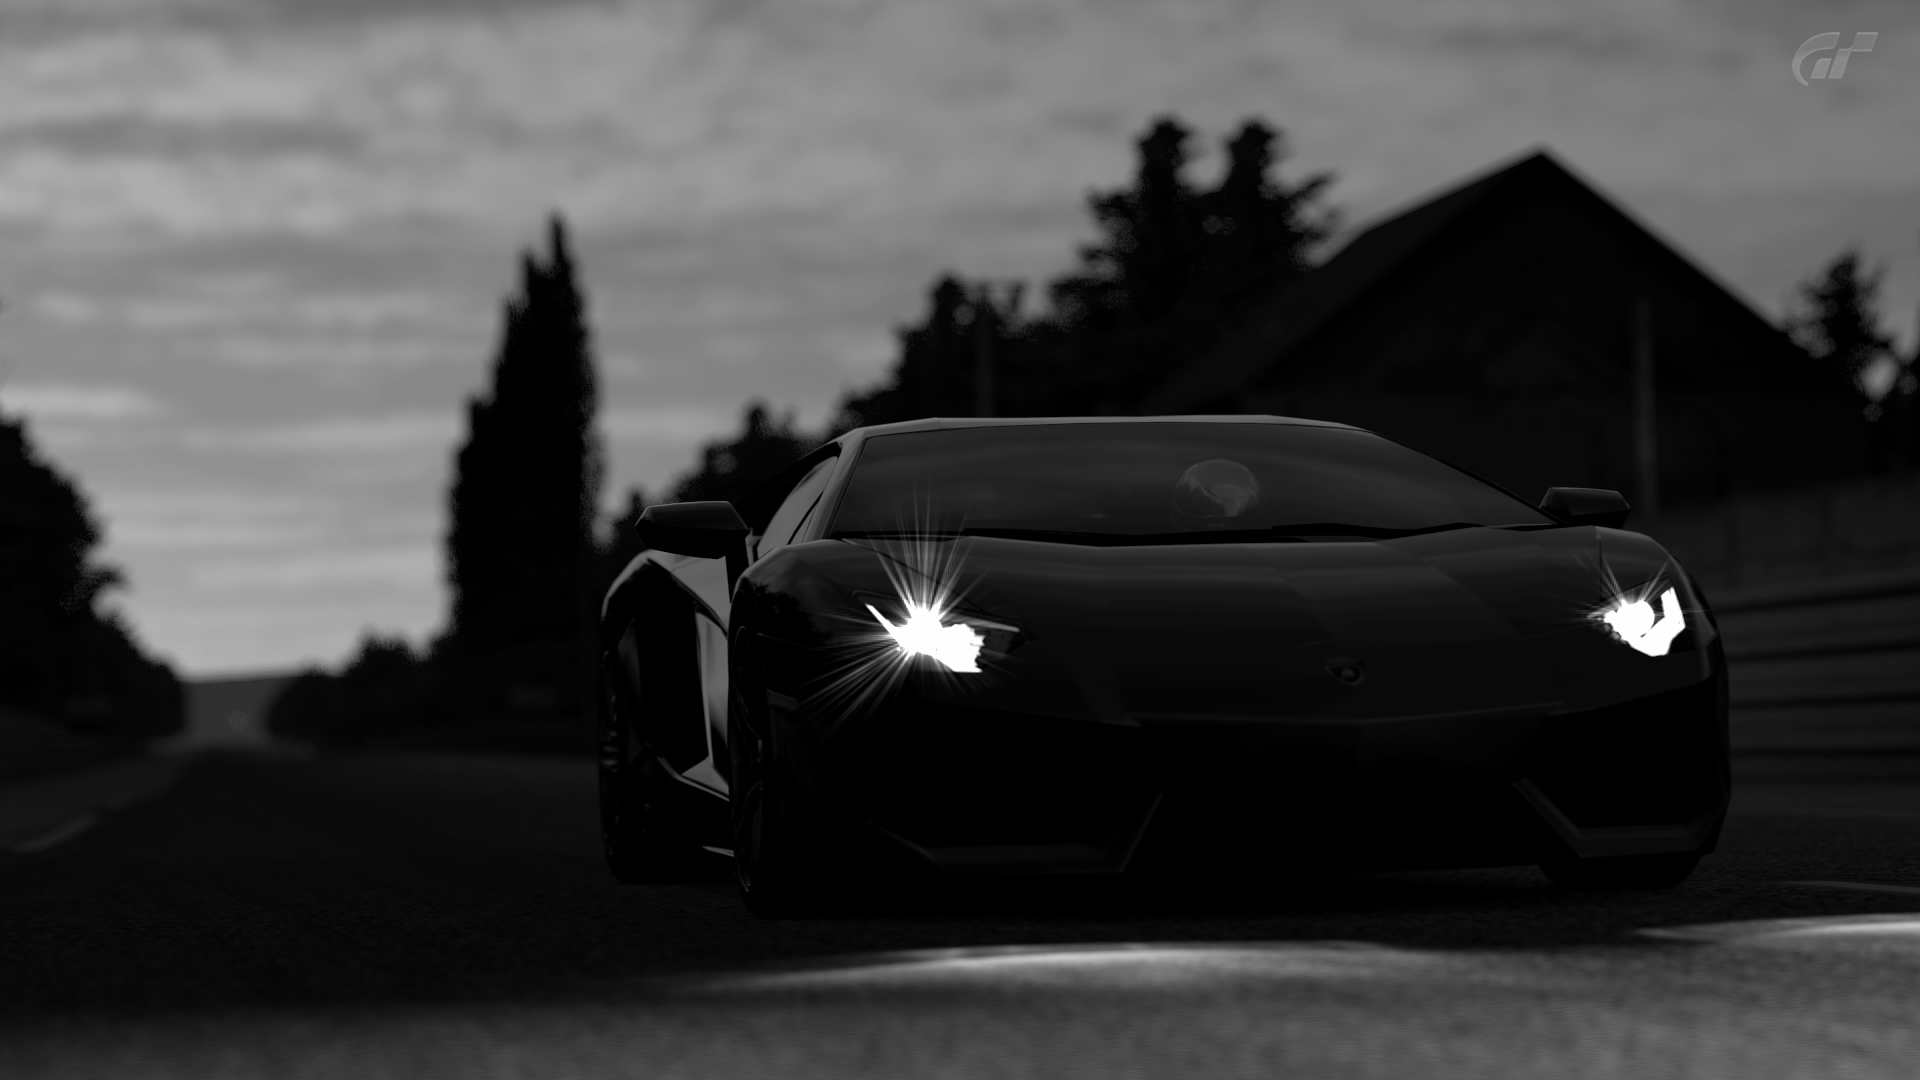 Lamborghini dark wallpapers hd pixelstalk net for Black wallpaper full hd